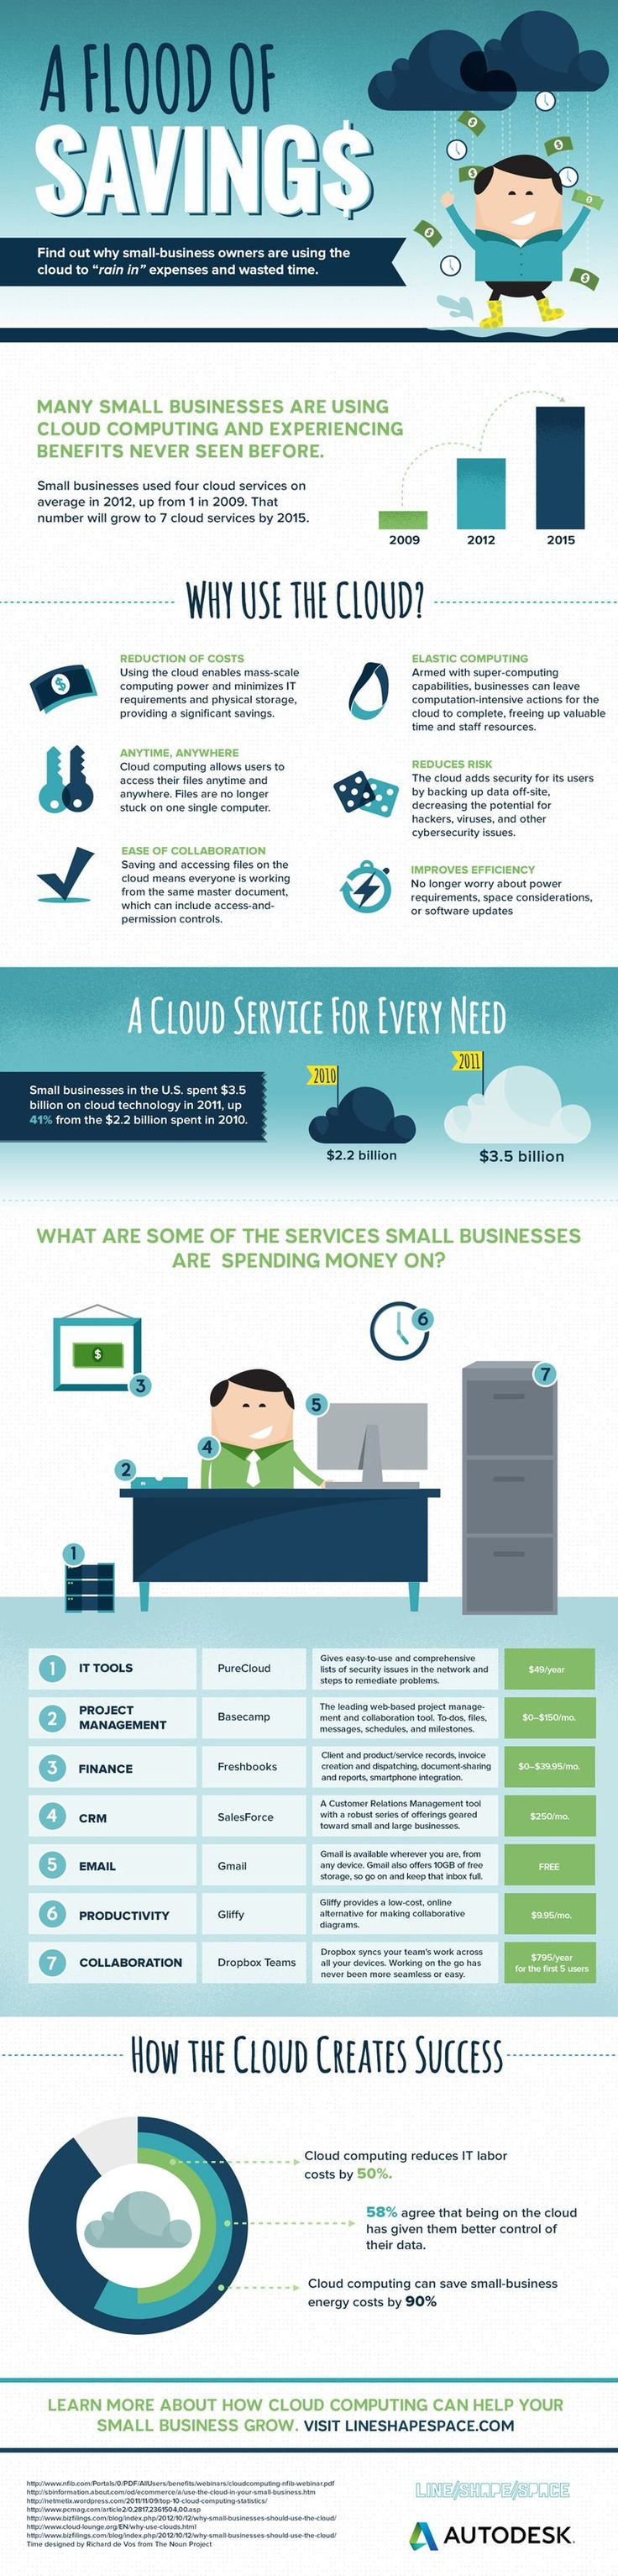 How #cloud computing benefits companies in terms of return on investment (ROI) #infographic